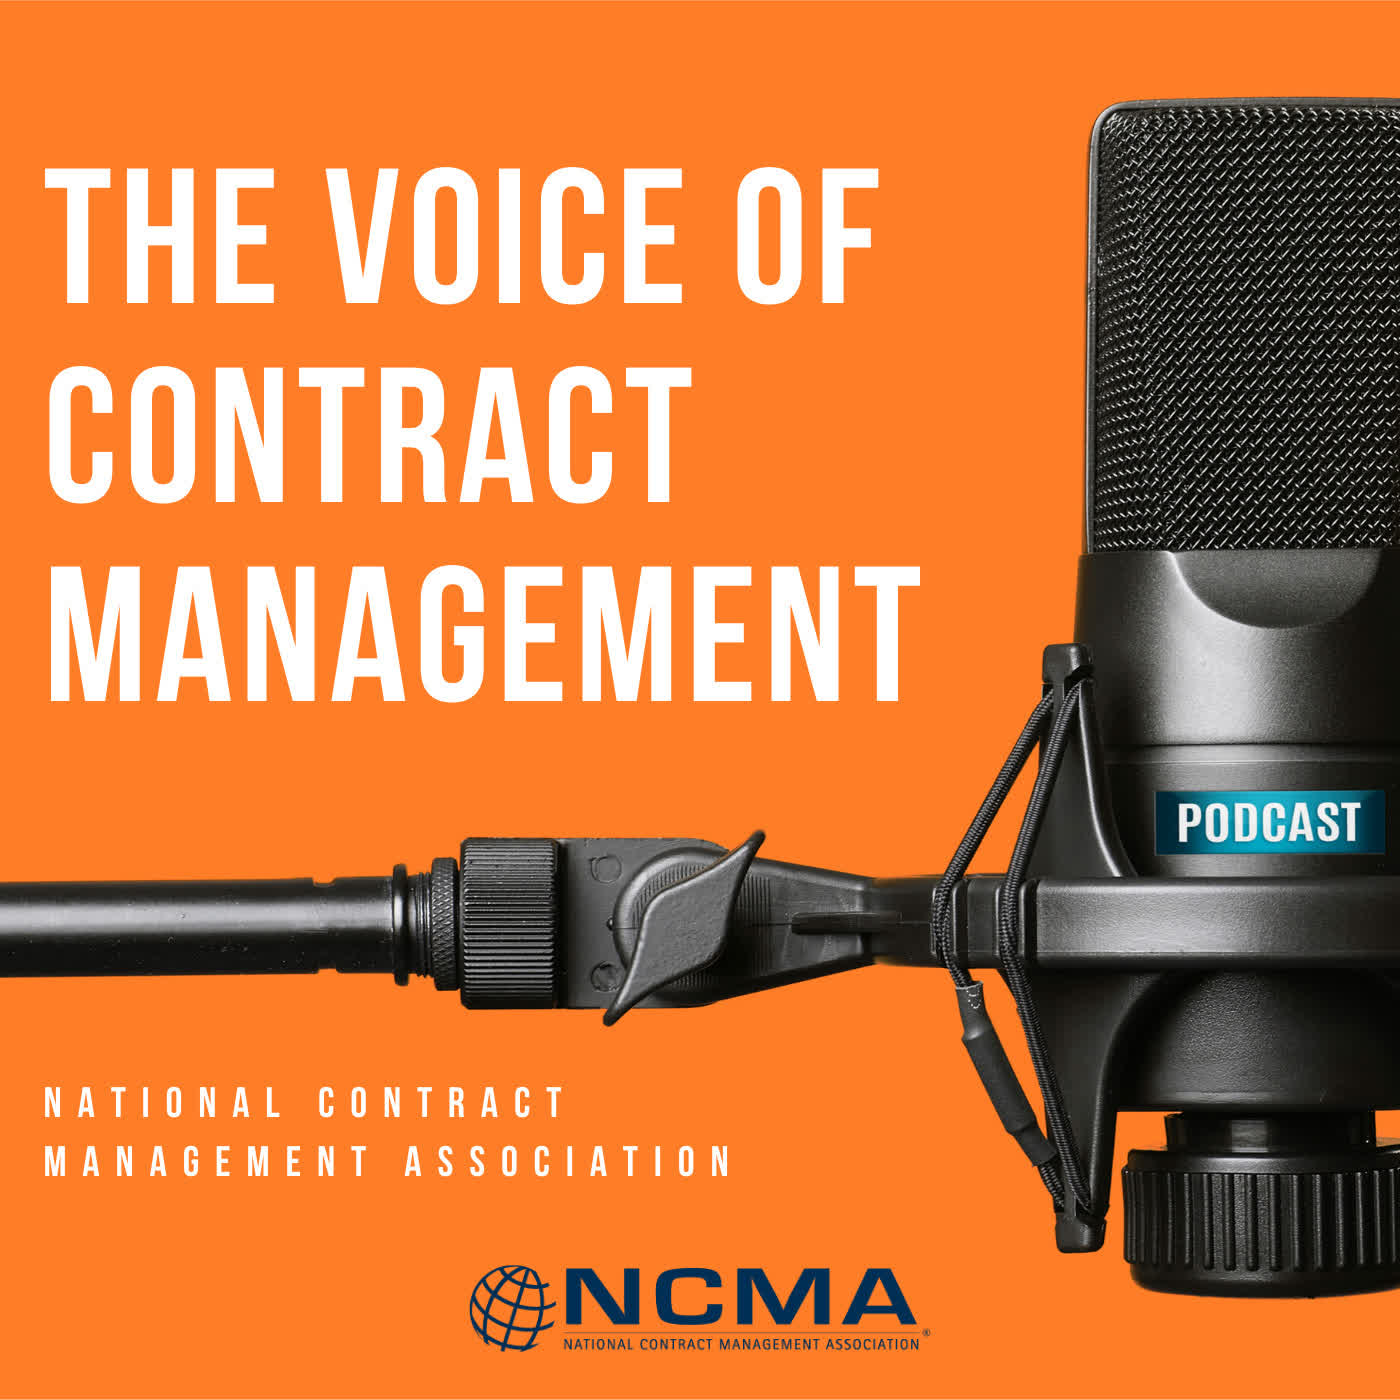 The Voice of Contract Management